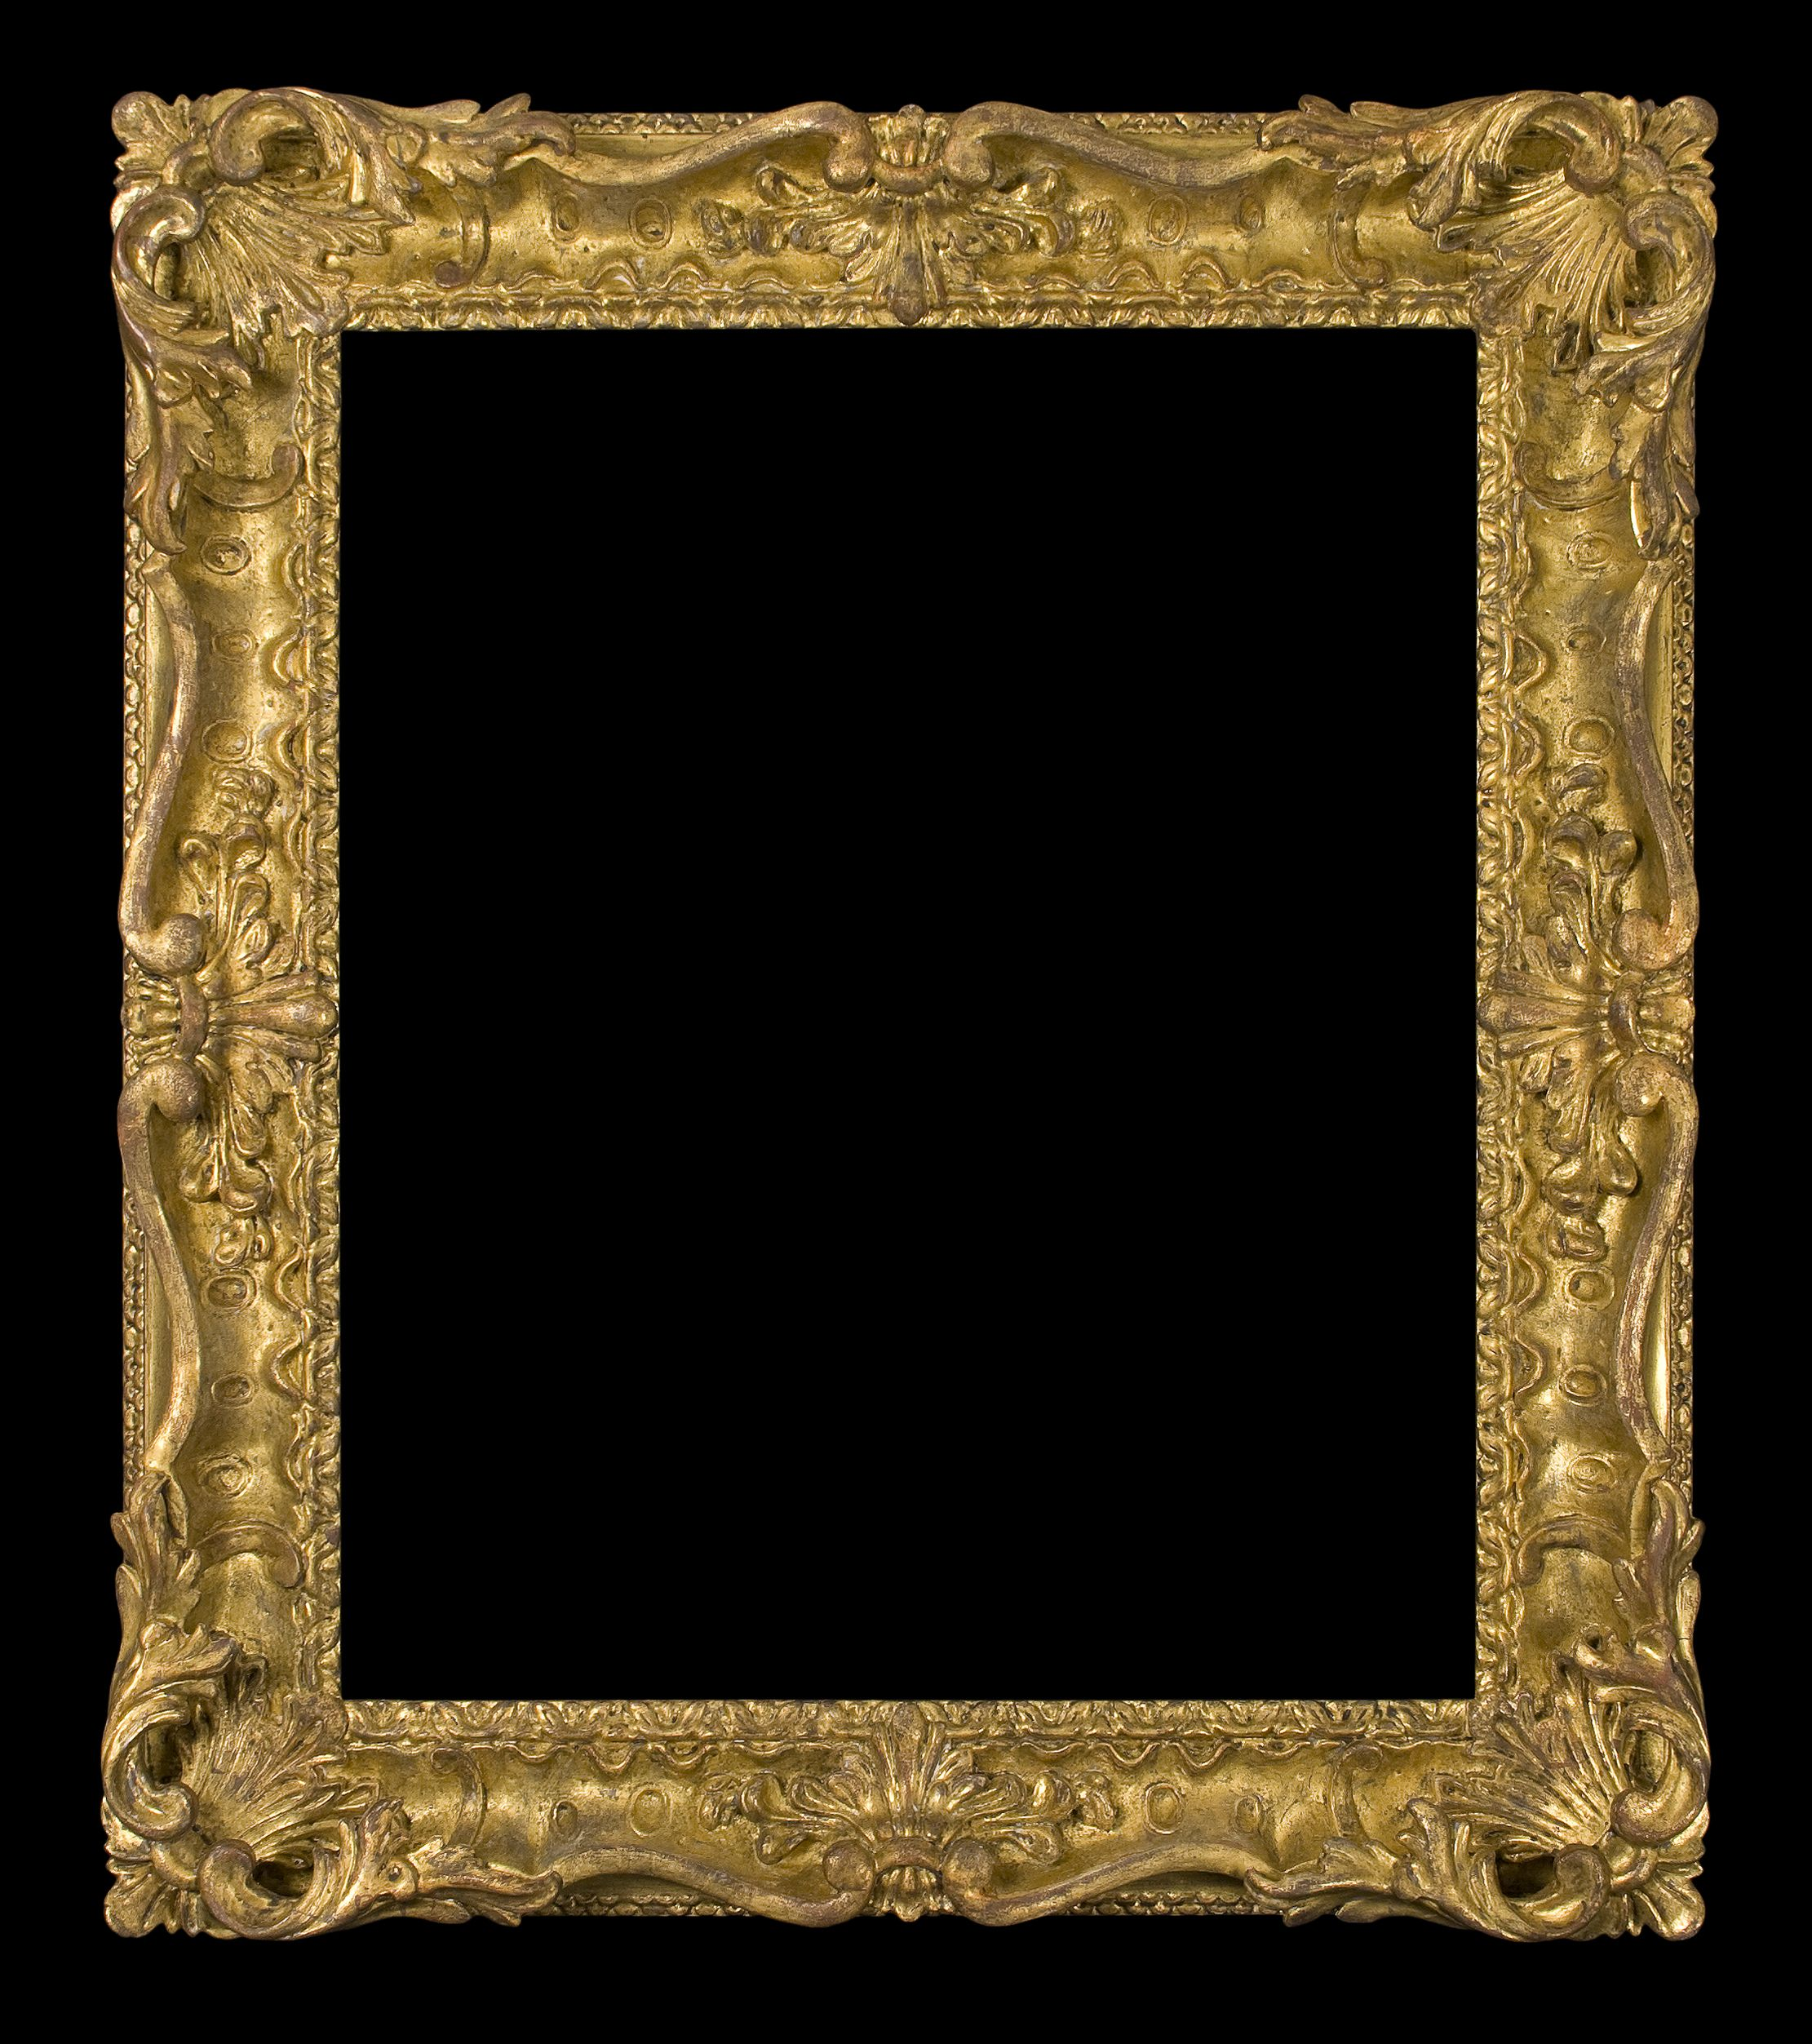 Craig Frames 20x30 Inch Picture Frame Smooth Wrap Finish 2 Inch Wide Vintage Vintage Picture Frames Frame Gold Picture Frames